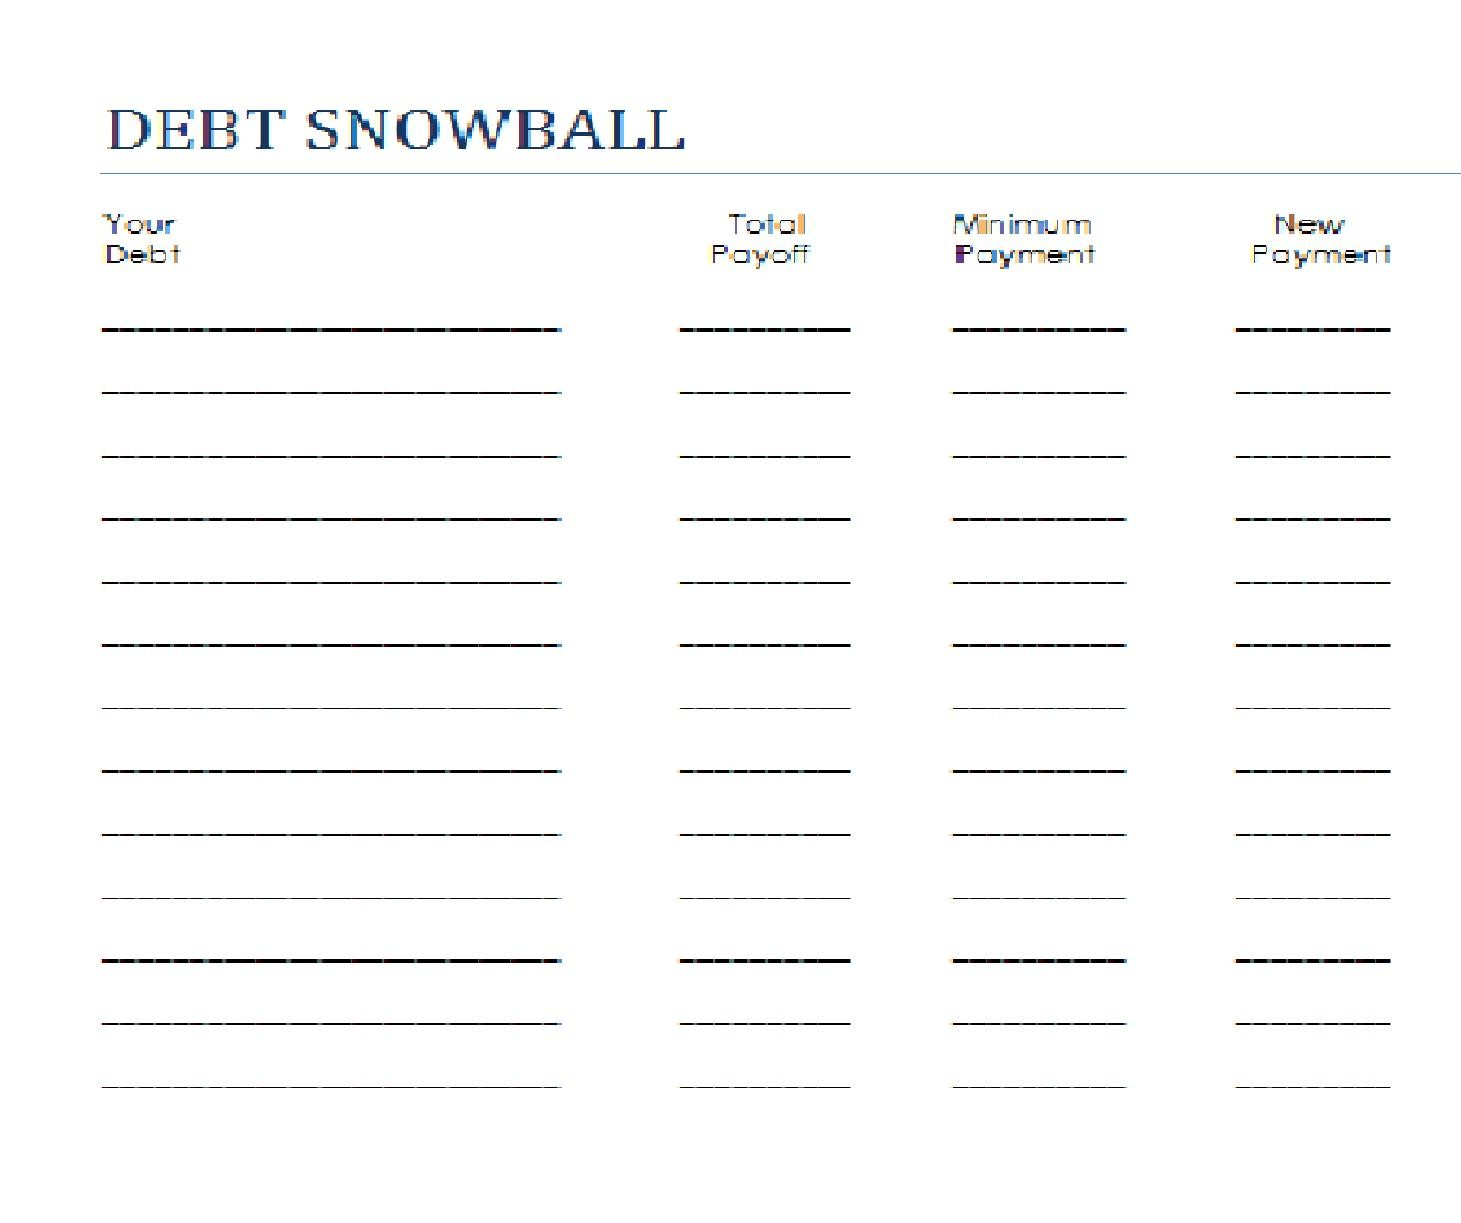 Dave Ramsey Debt Snowball Form Digital Event Info